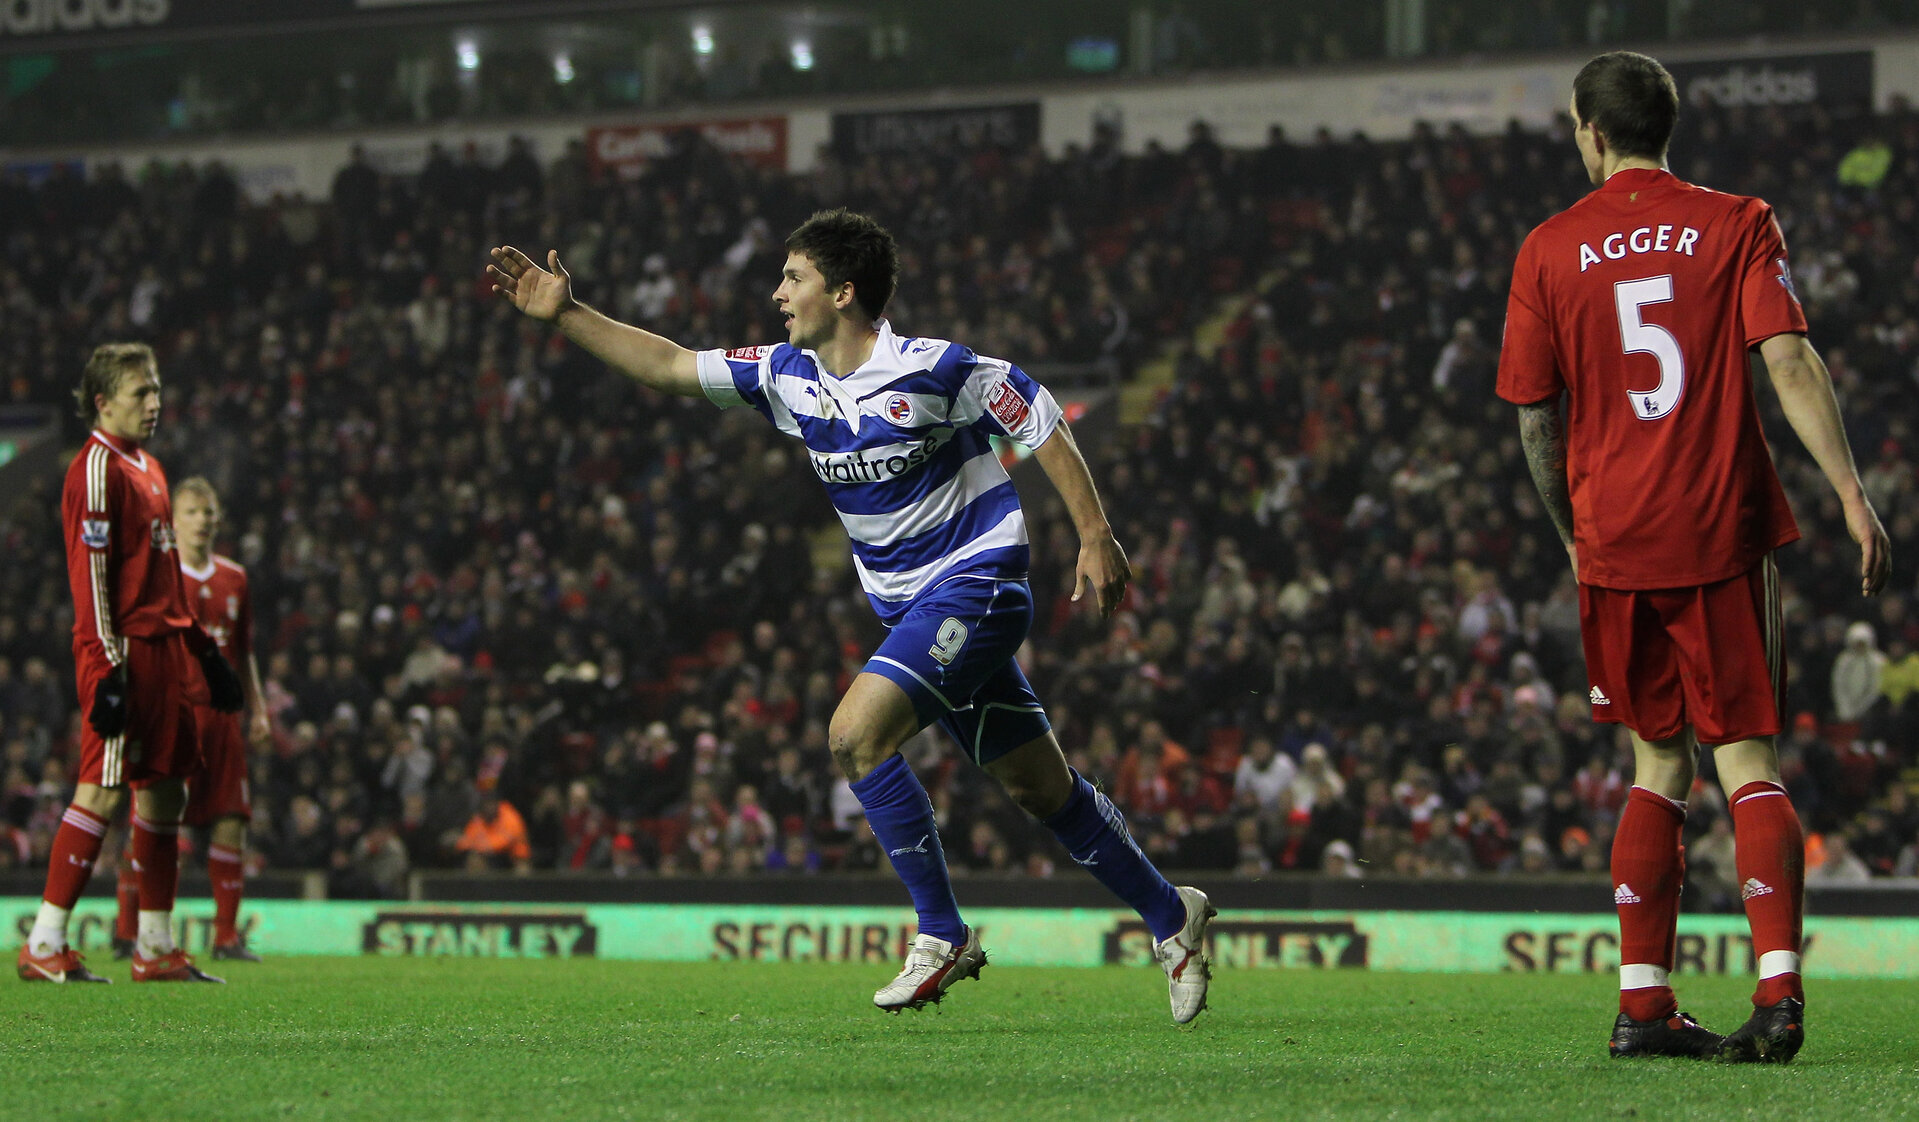 LIVERPOOL, ENGLAND - JANUARY 13:  Shane Long of Reading celebrates scoring his team's second goal during the FA Cup sponsored by E.ON 3rd Round Replay match between Liverpool and Reading at Anfield on January 13, 2010 in Liverpool, England.  (Photo by Alex Livesey/Getty Images)